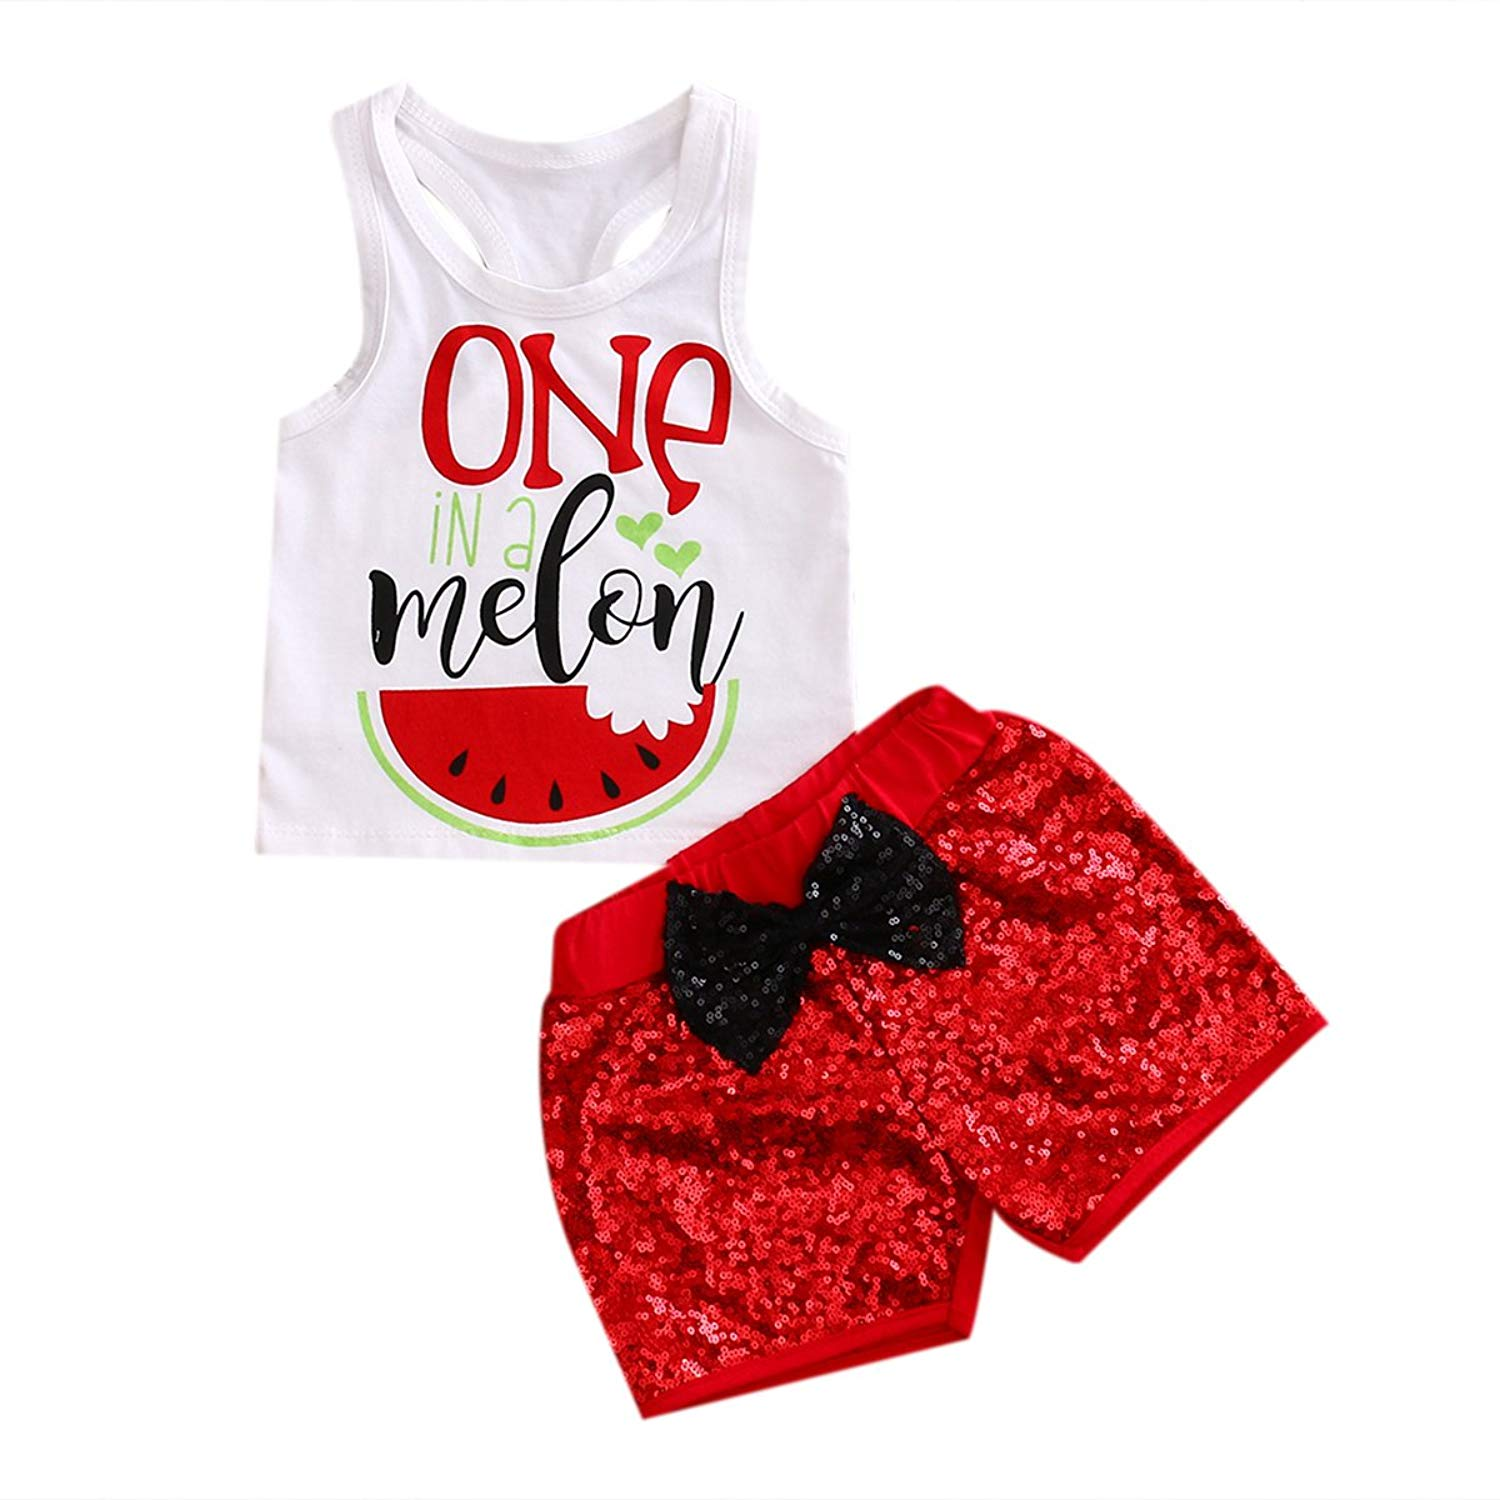 Imcute Baby Girl Clothes Sleeveless Watermelon Top Tshirt+Red Bow Sequins Short 2 Pcs